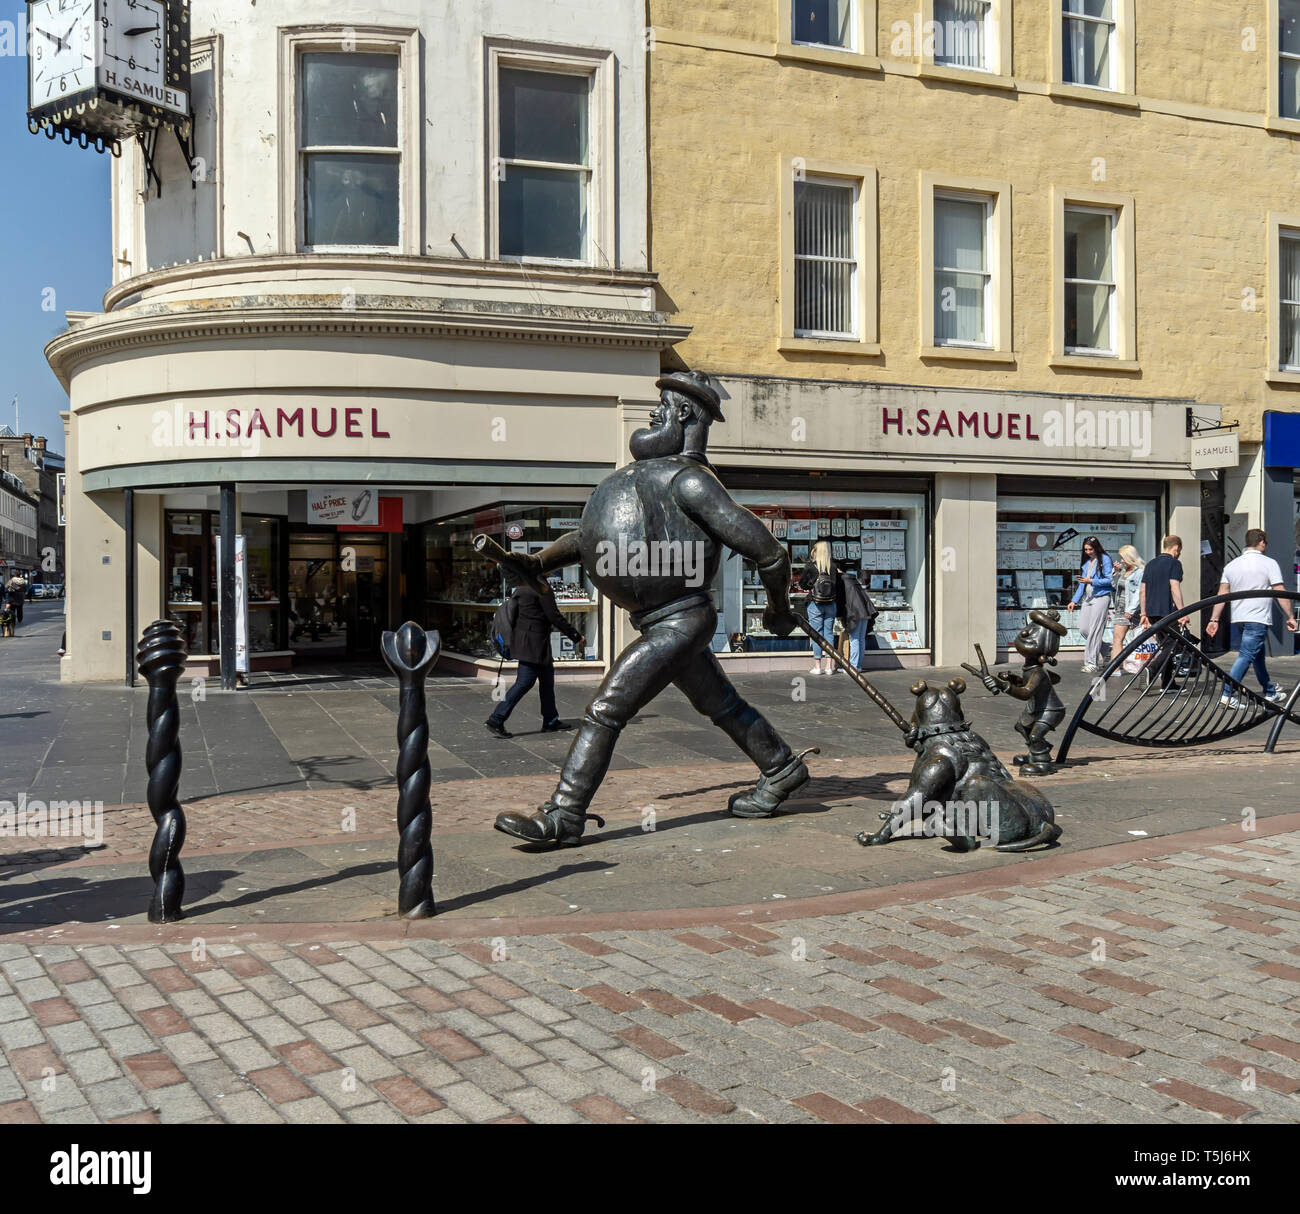 Desperate Dan bronze statue based on the character in british comic magazine The Dandy located in High Street at the City Square Dundee Scotland UK - Stock Image